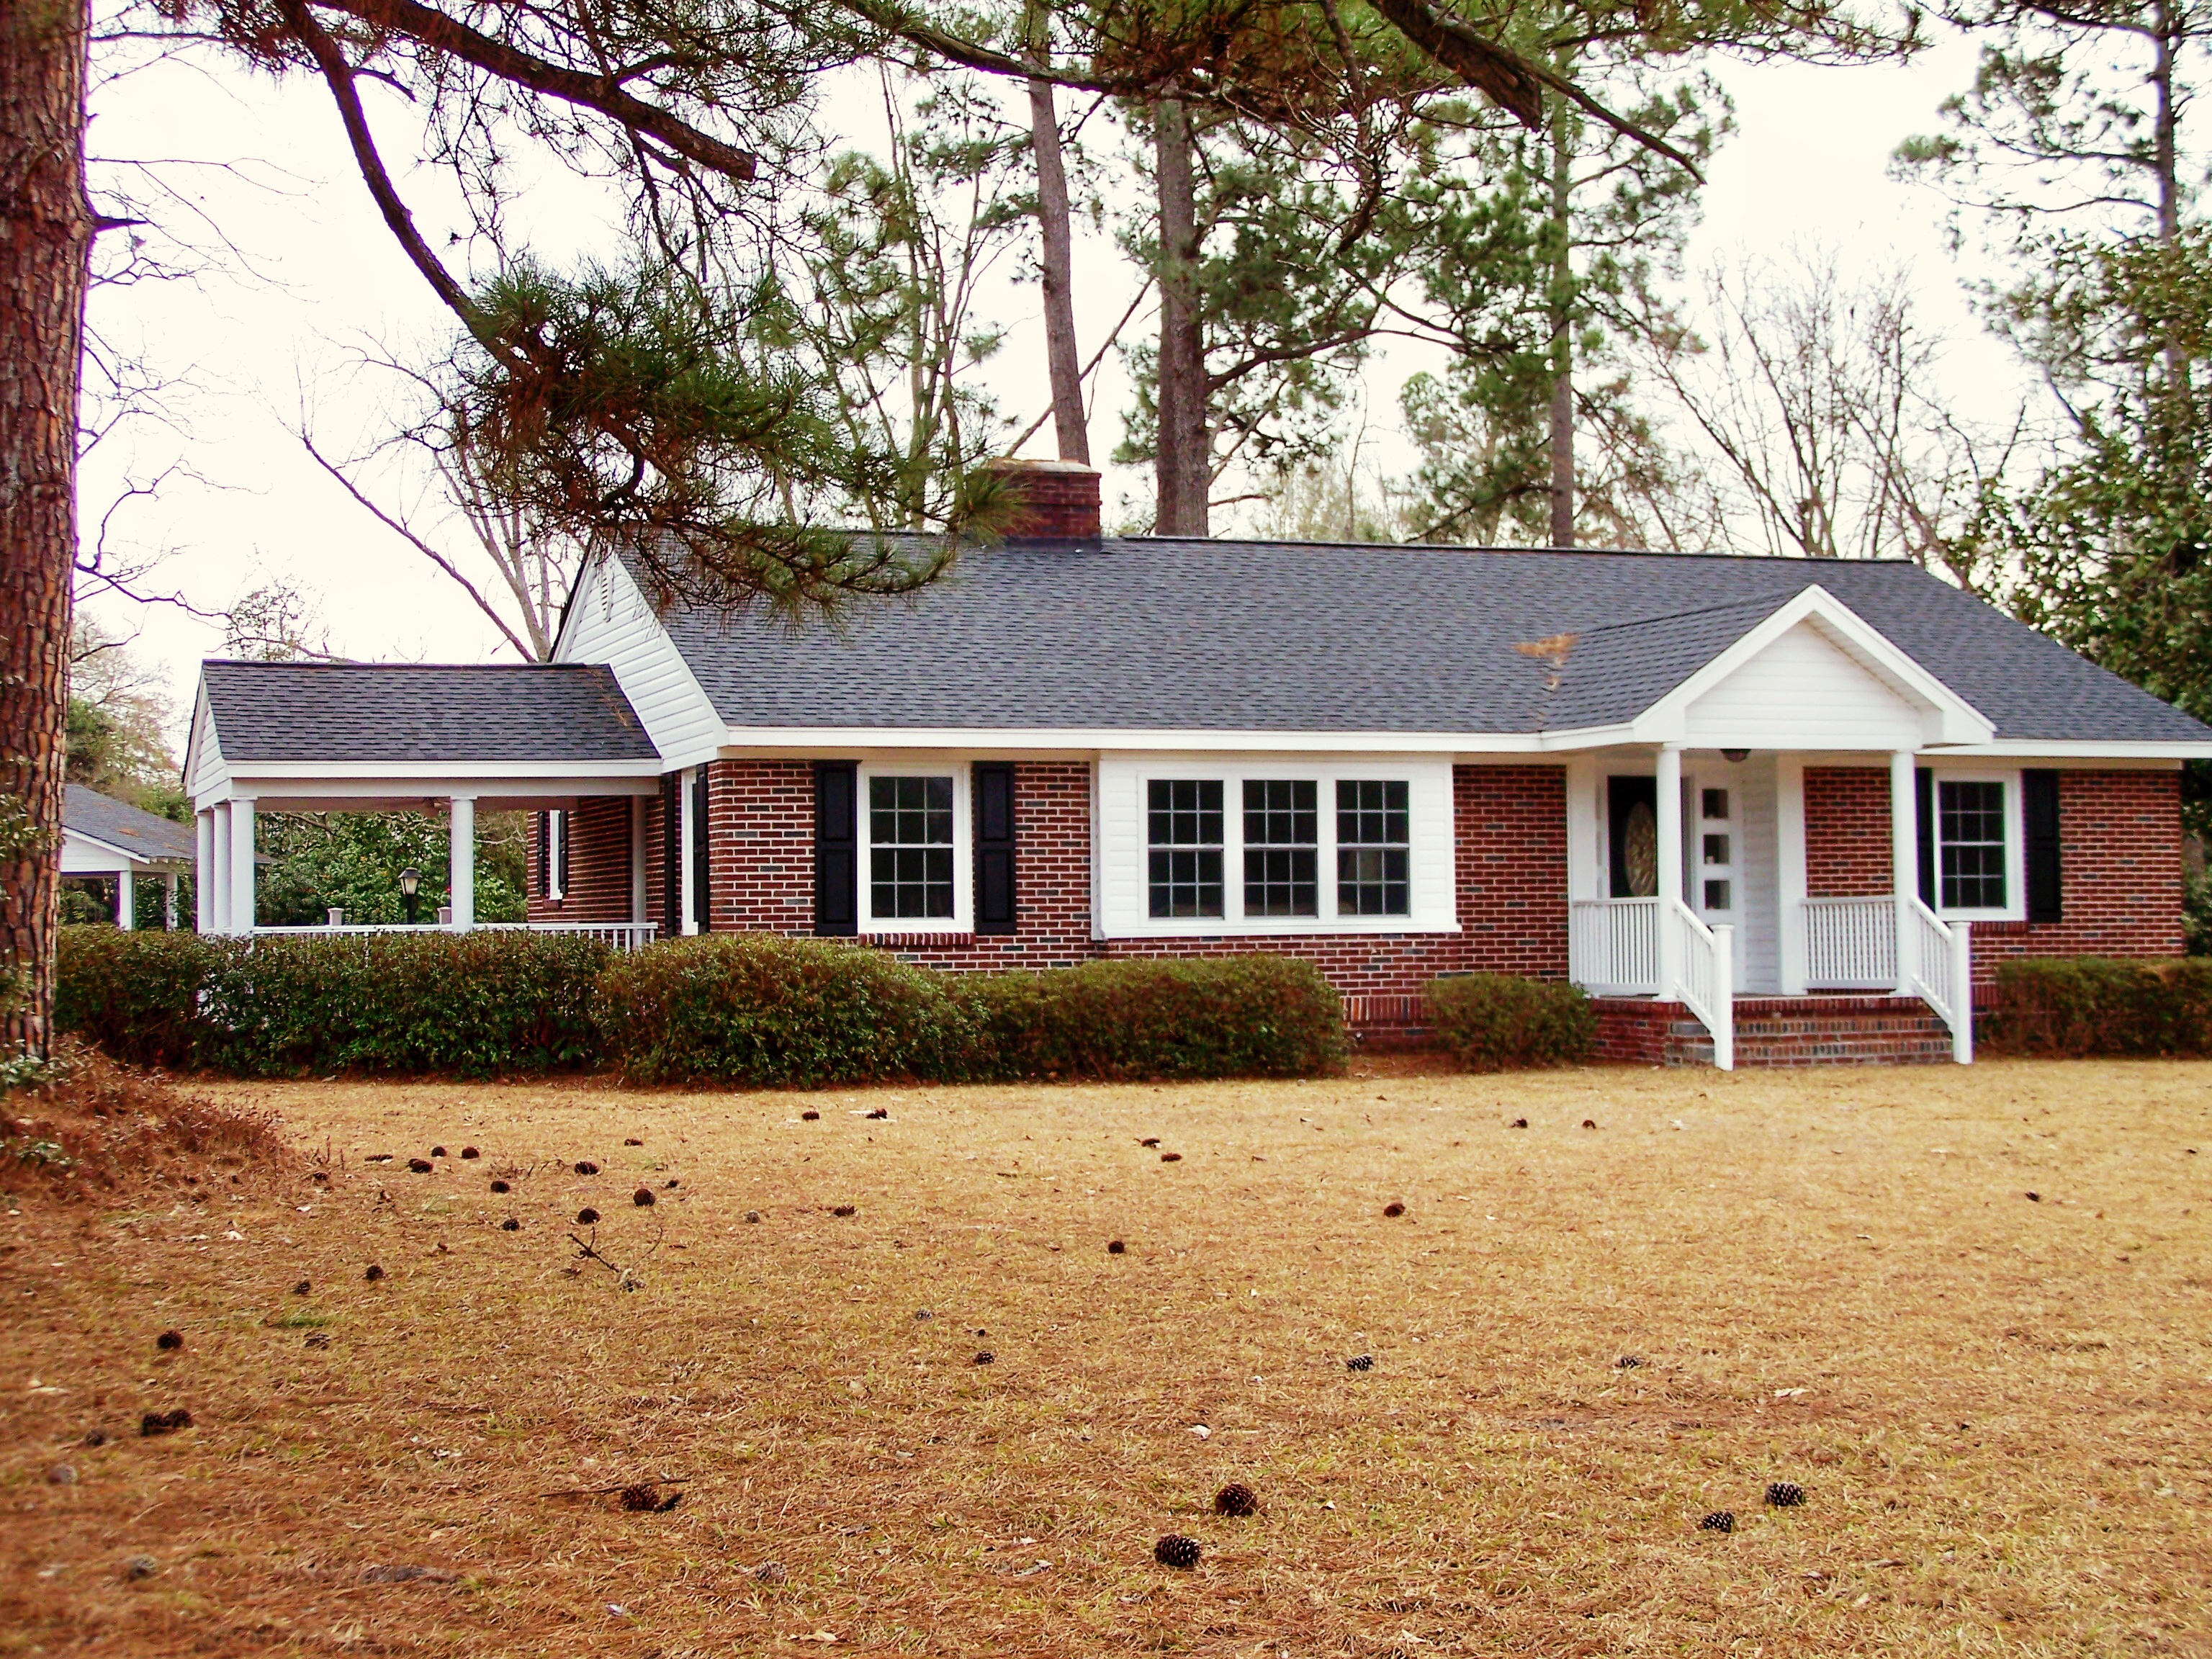 5338 Cameron Road, Cameron, South Carolina 29030